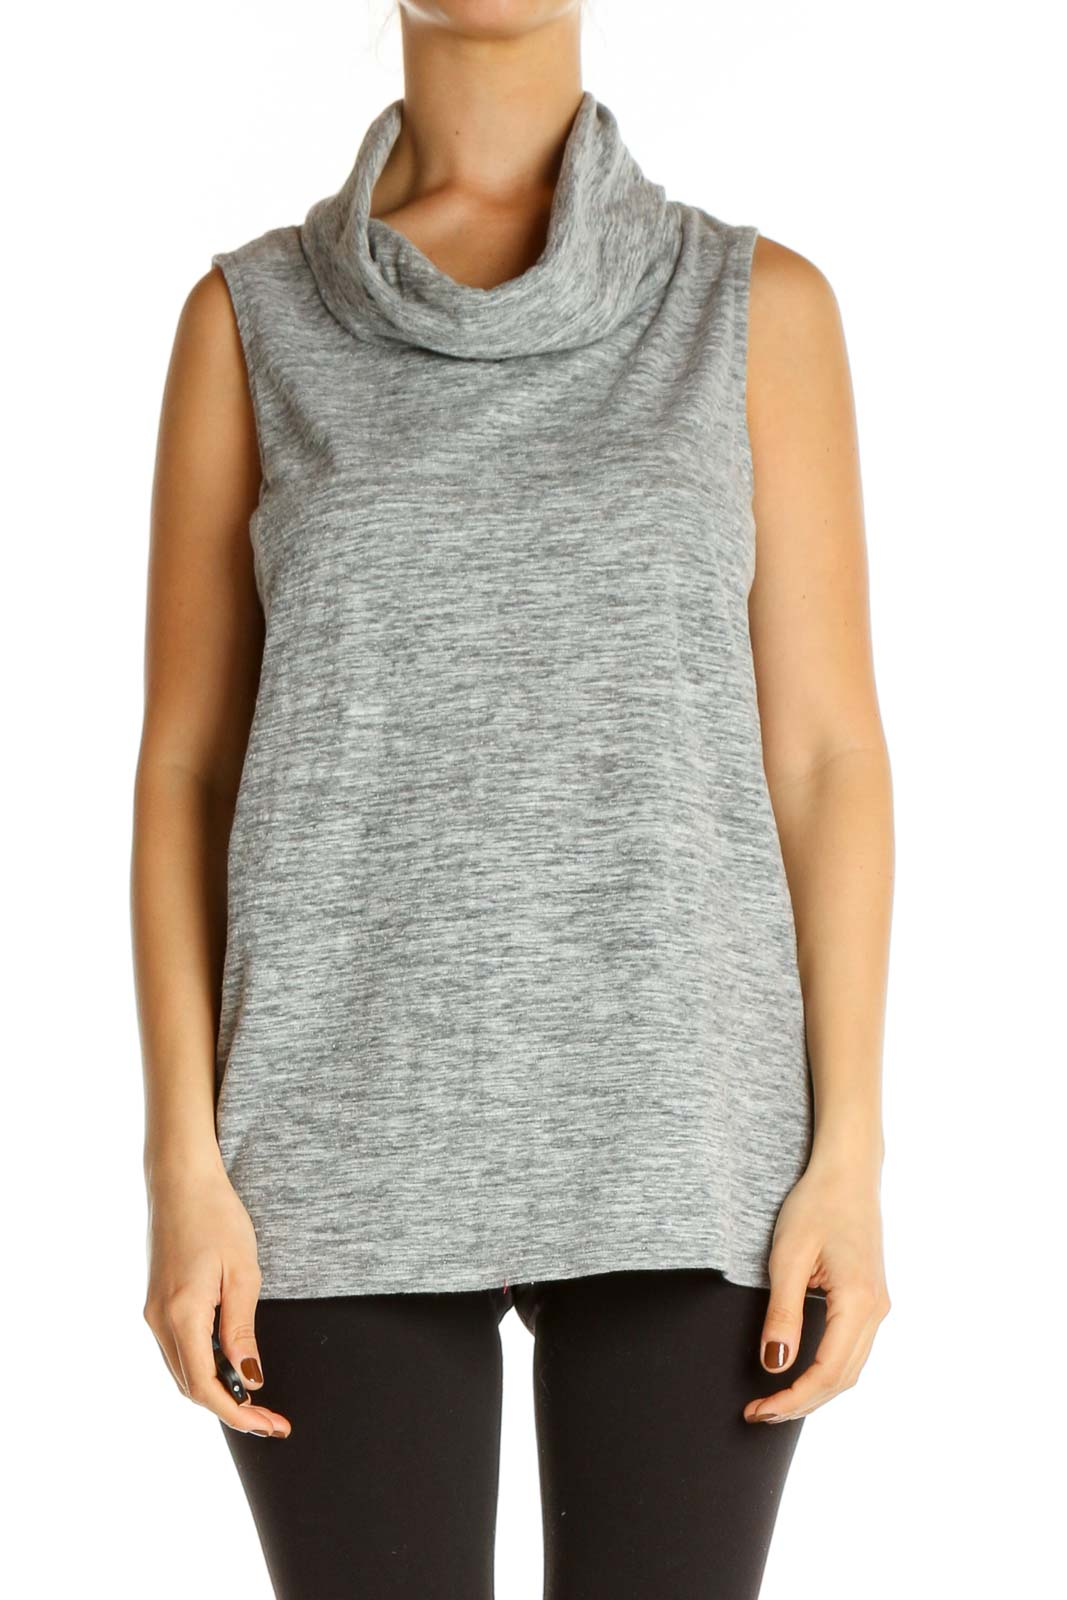 Gray Textured Casual Tank Top Front